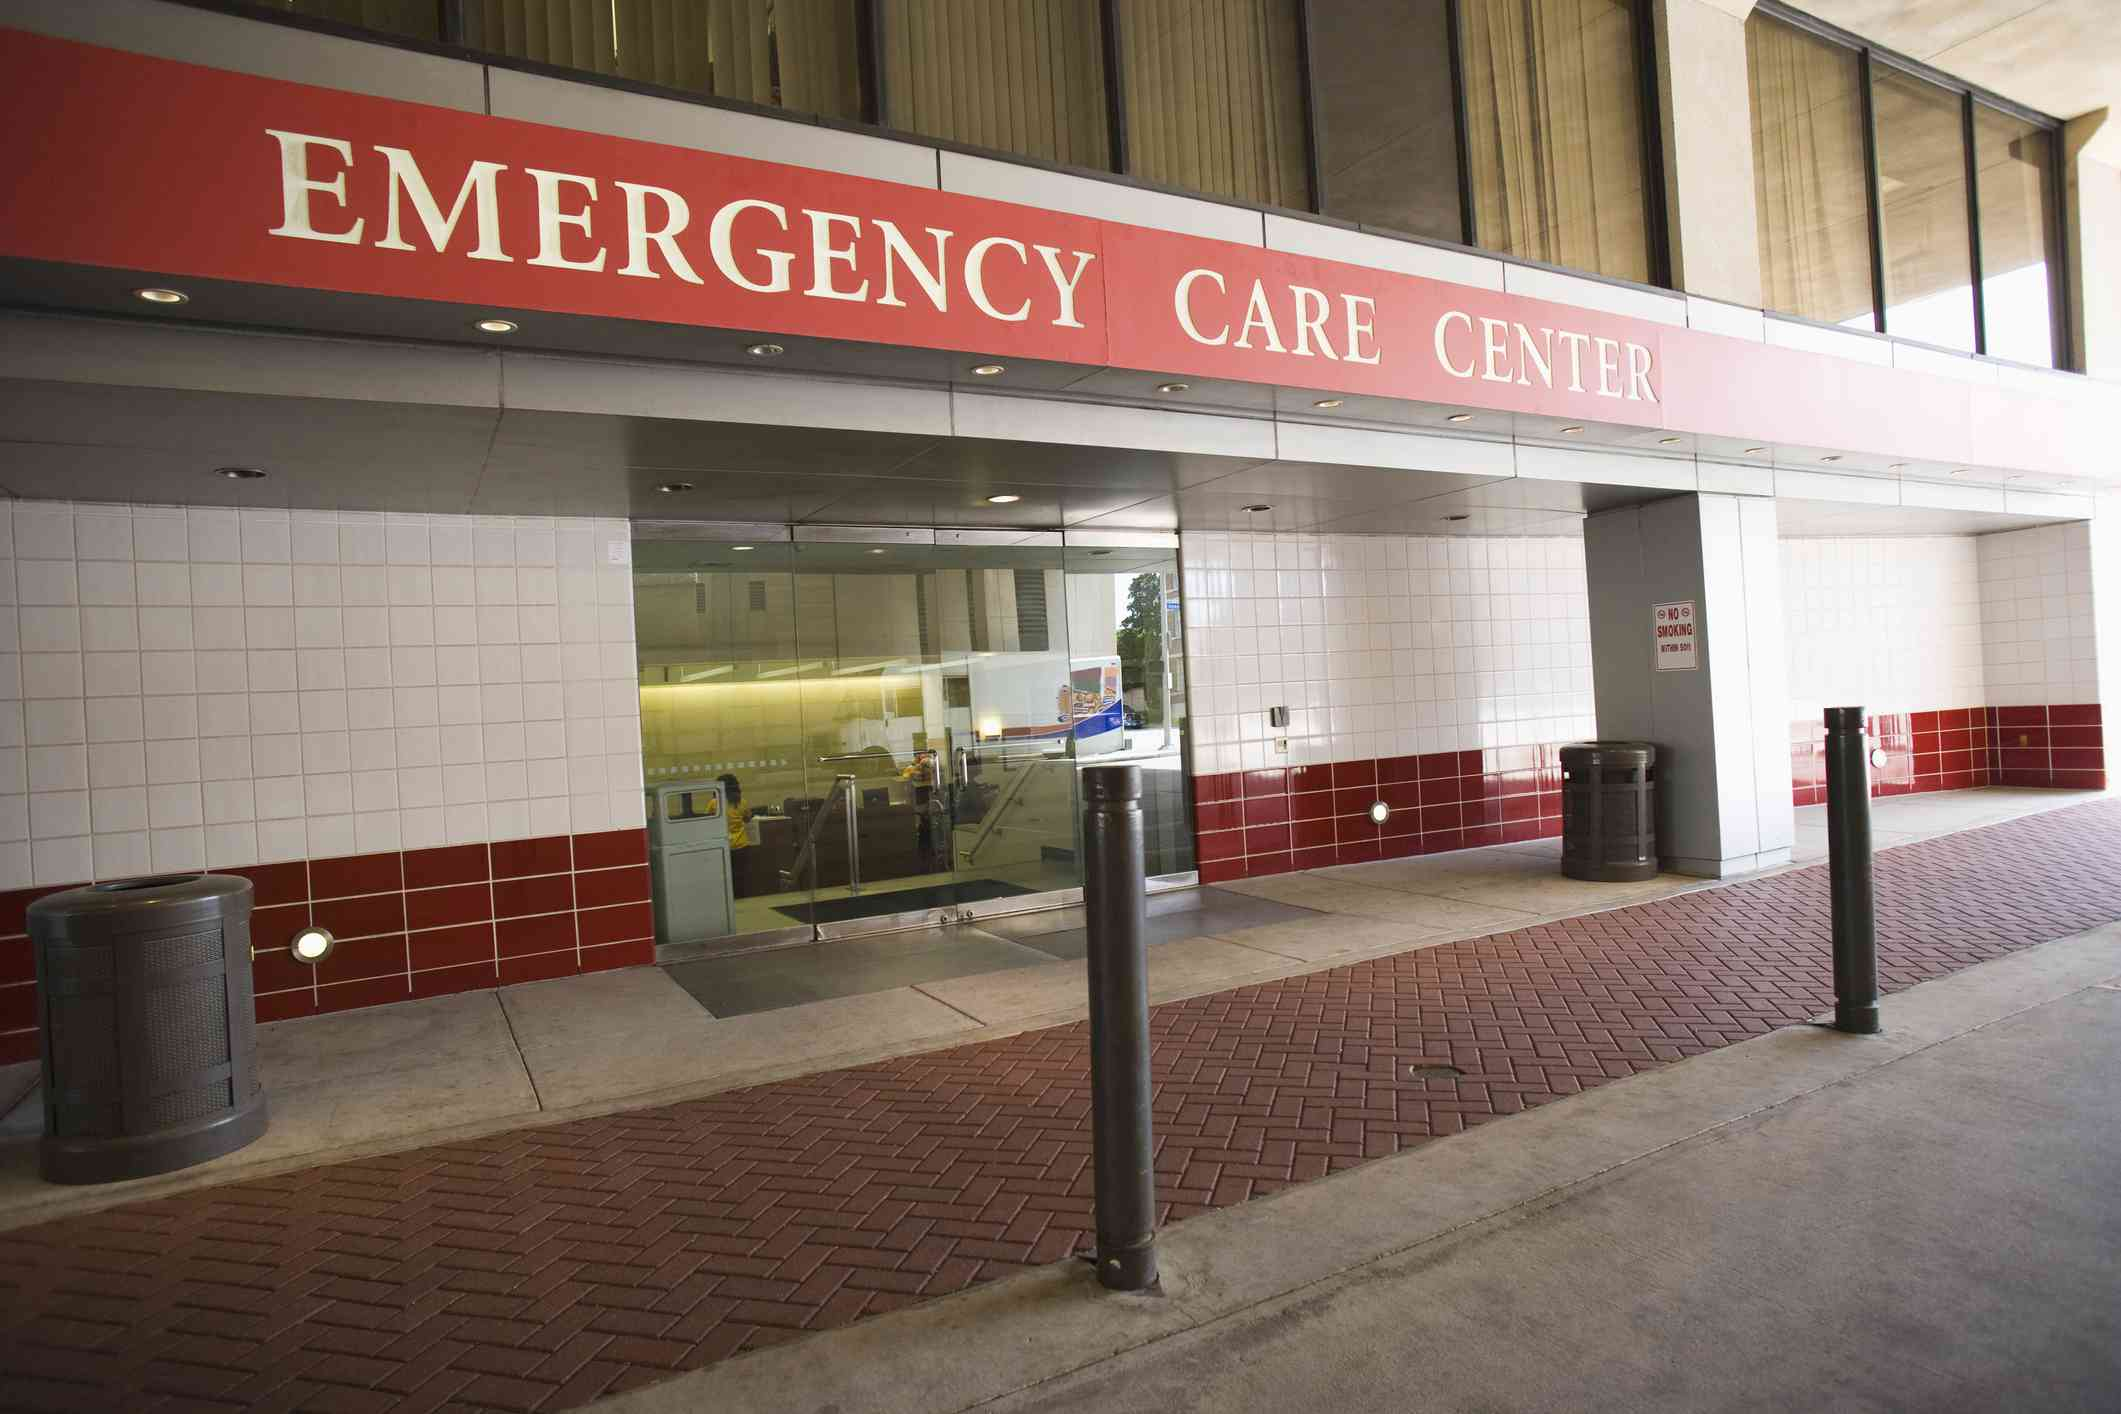 External view of hospital emergency room entrance